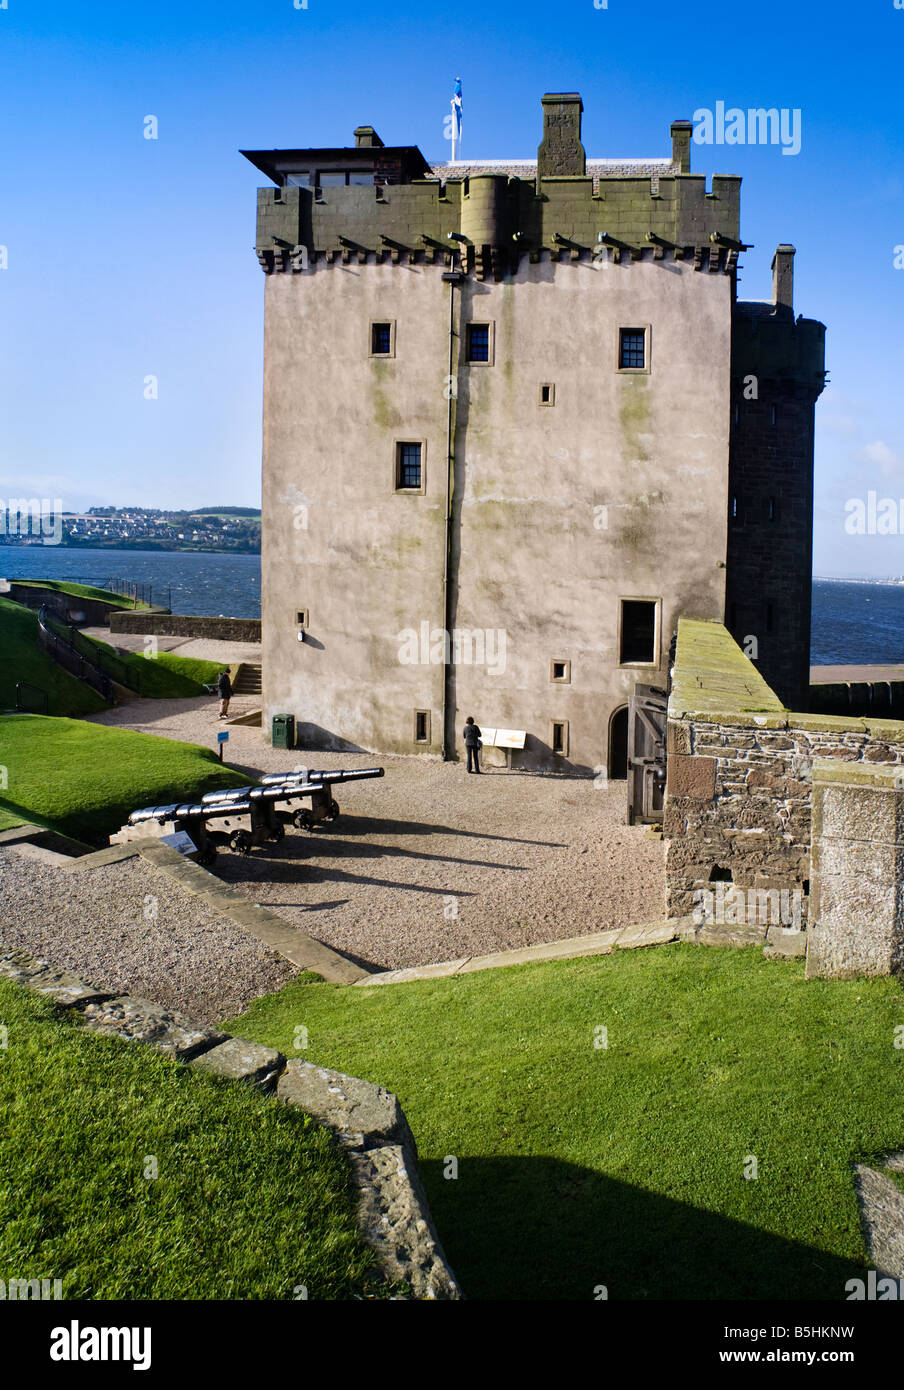 Broughty Ferry Castle, Broughty Ferry, Dundee, Scotland. - Stock Image